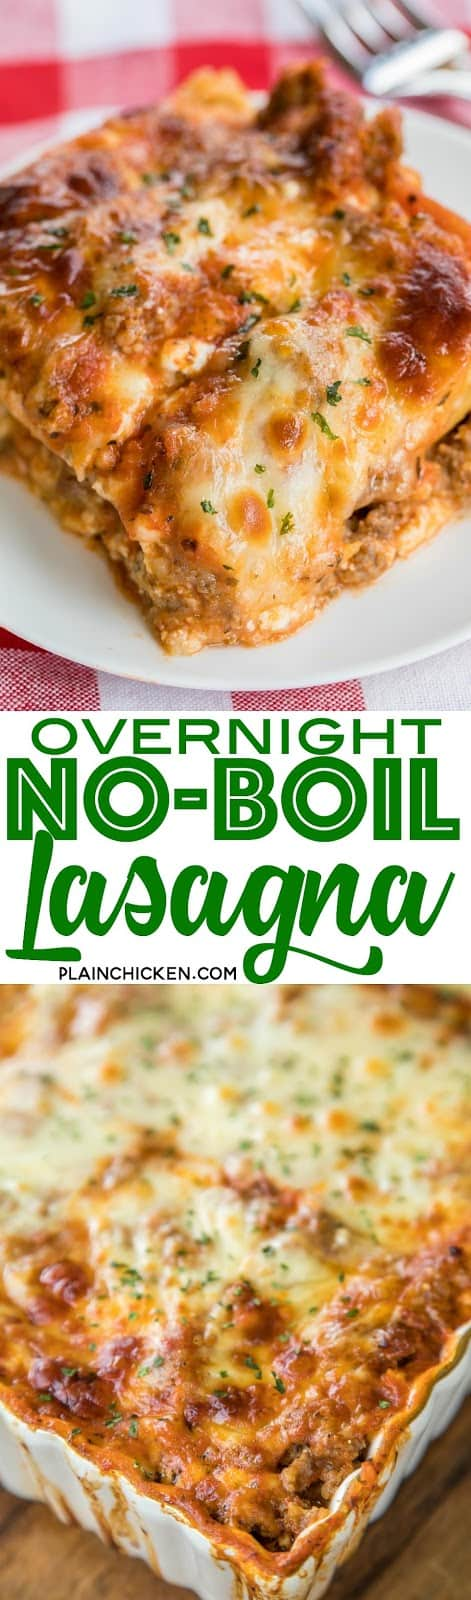 """Overnight No-Boil Lasagna - seriously THE BEST lasagna we've ever eaten!!! SO easy to make and you don't have to boil your noodles! The noodles """"cook"""" overnight and are perfect. Lasagna noodles, cottage cheese, italian sausage, spaghetti sauce, water, mozzarella, garlic and parmesan. Serve with some garlic bread and a salad. Can freeze leftovers for later. We LOVE this lasagna casserole recipe!!! #lasagna #casserolerecipe #lasagnarecipe #pastarecipe"""